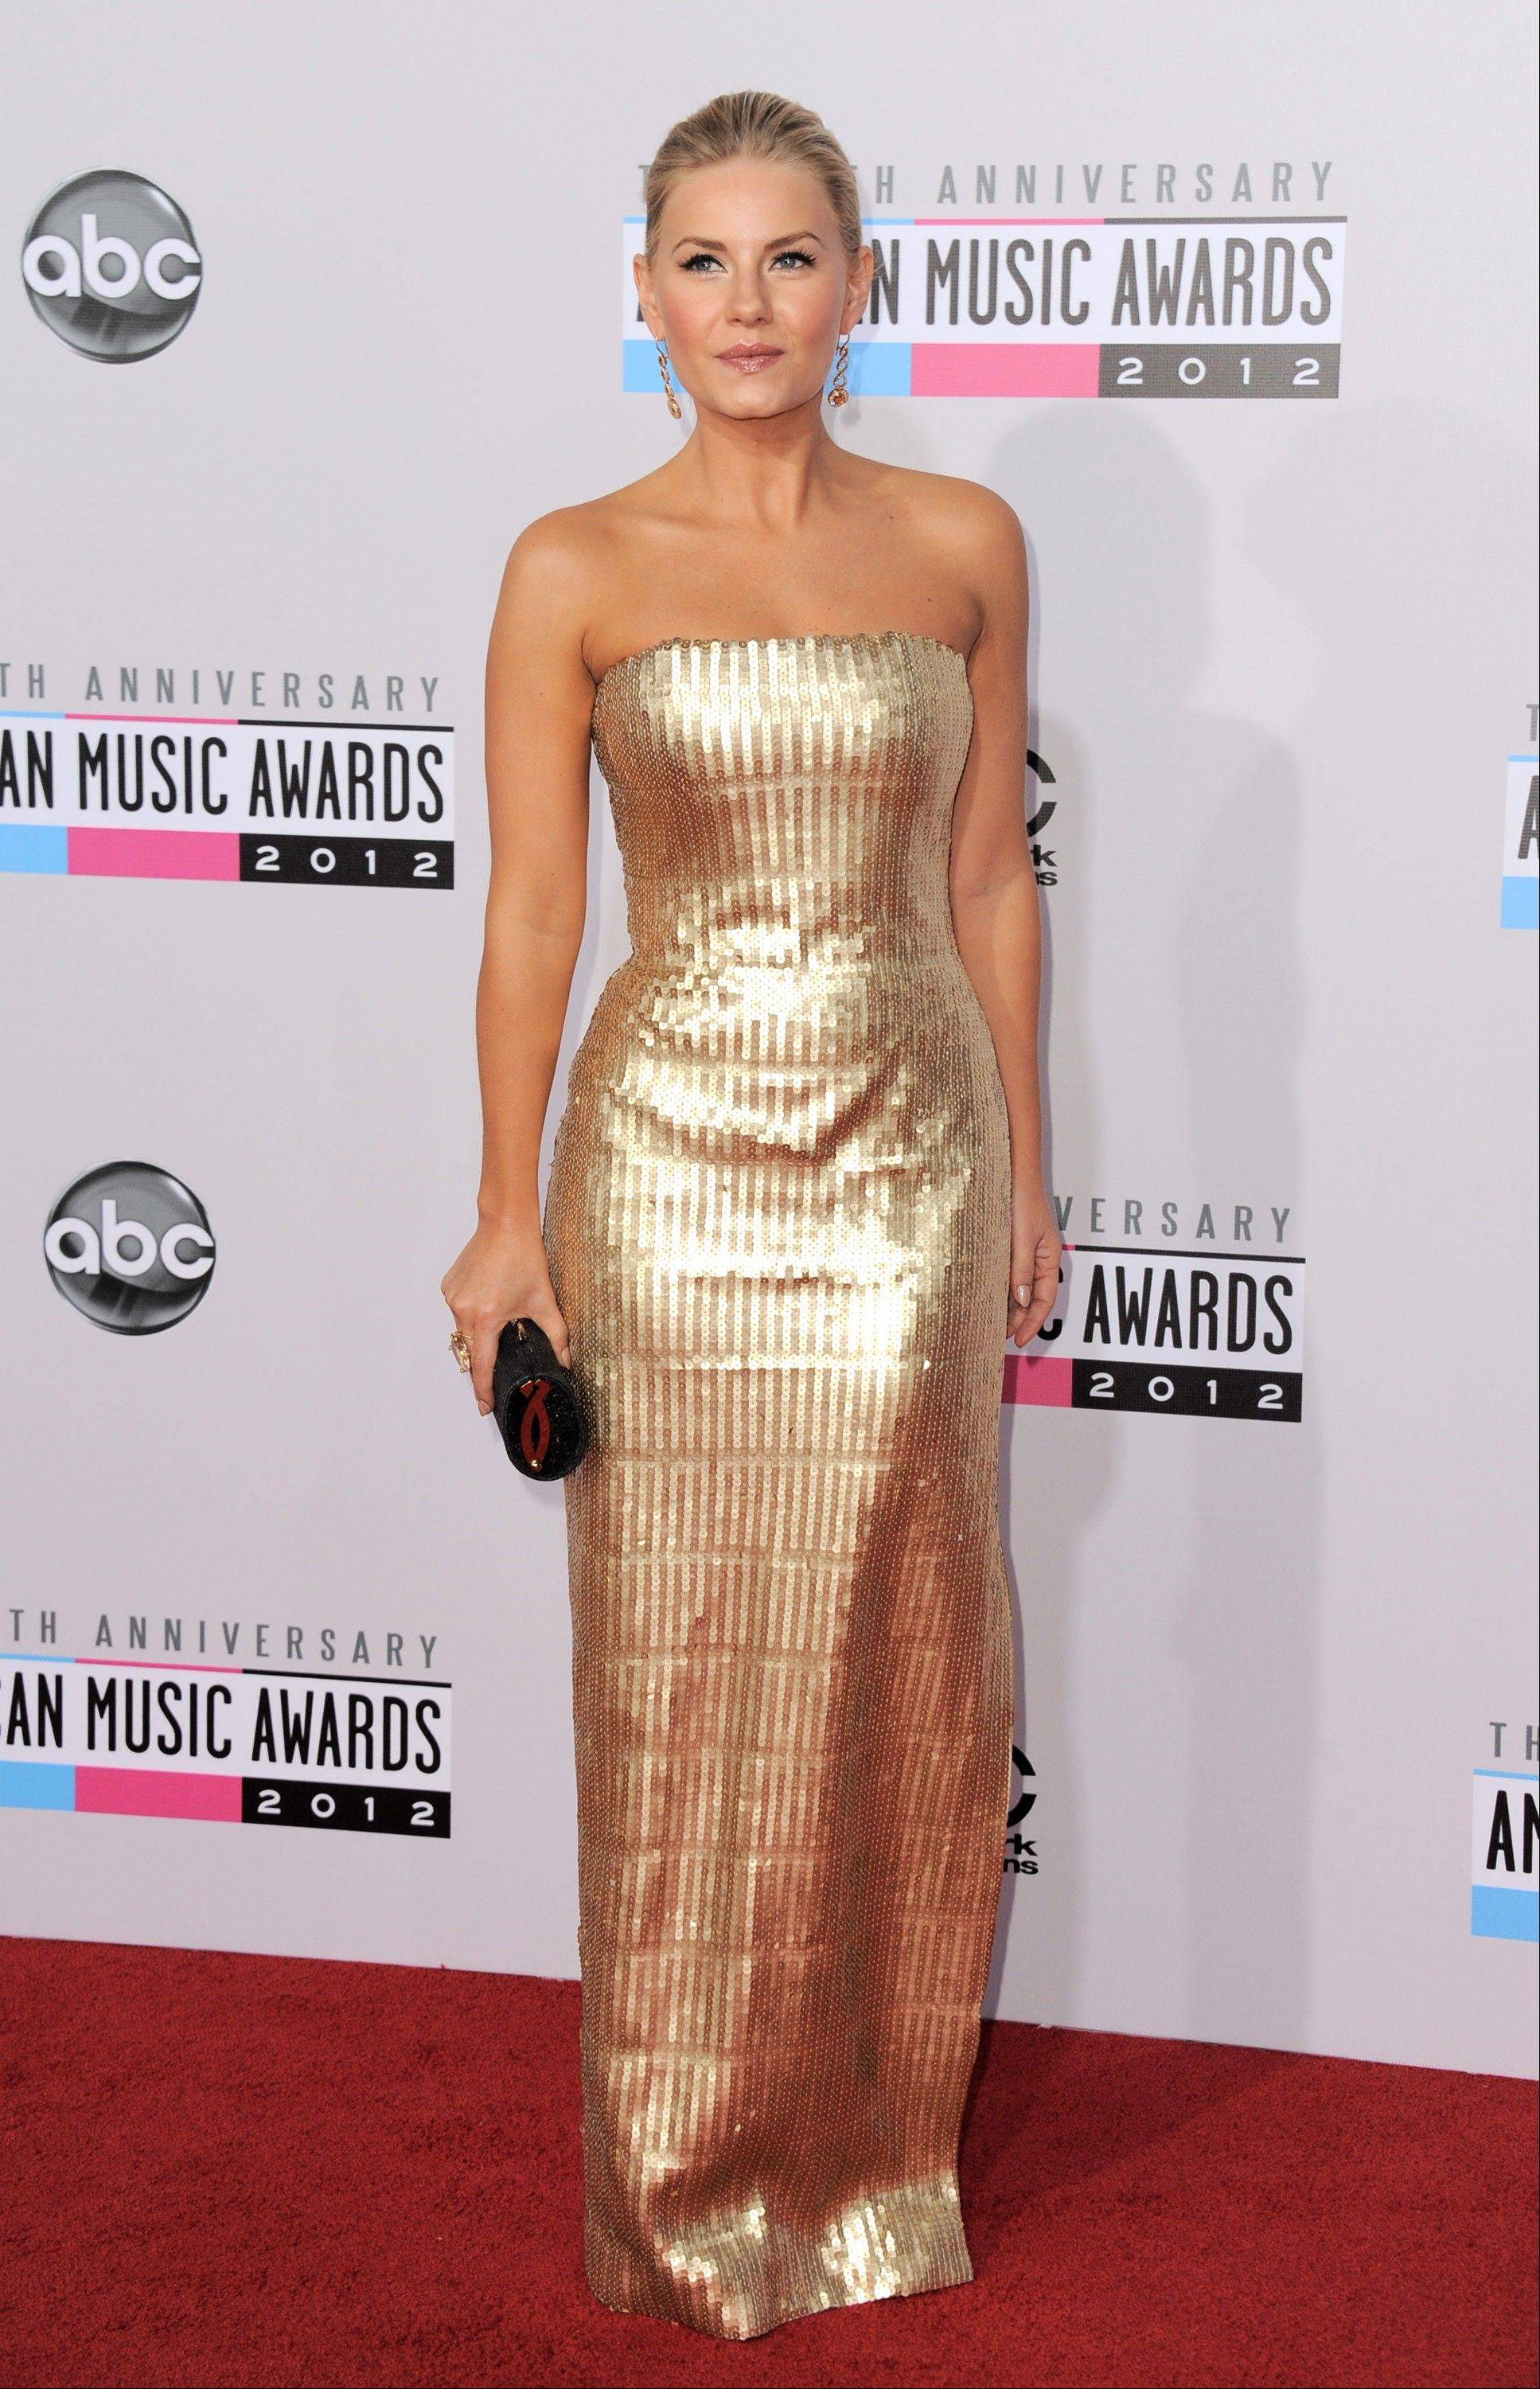 """Happy Endings"" actress Elisha Cuthbert arrives at the 40th Anniversary American Music Awards on Sunday, Nov. 18, 2012, in Los Angeles."